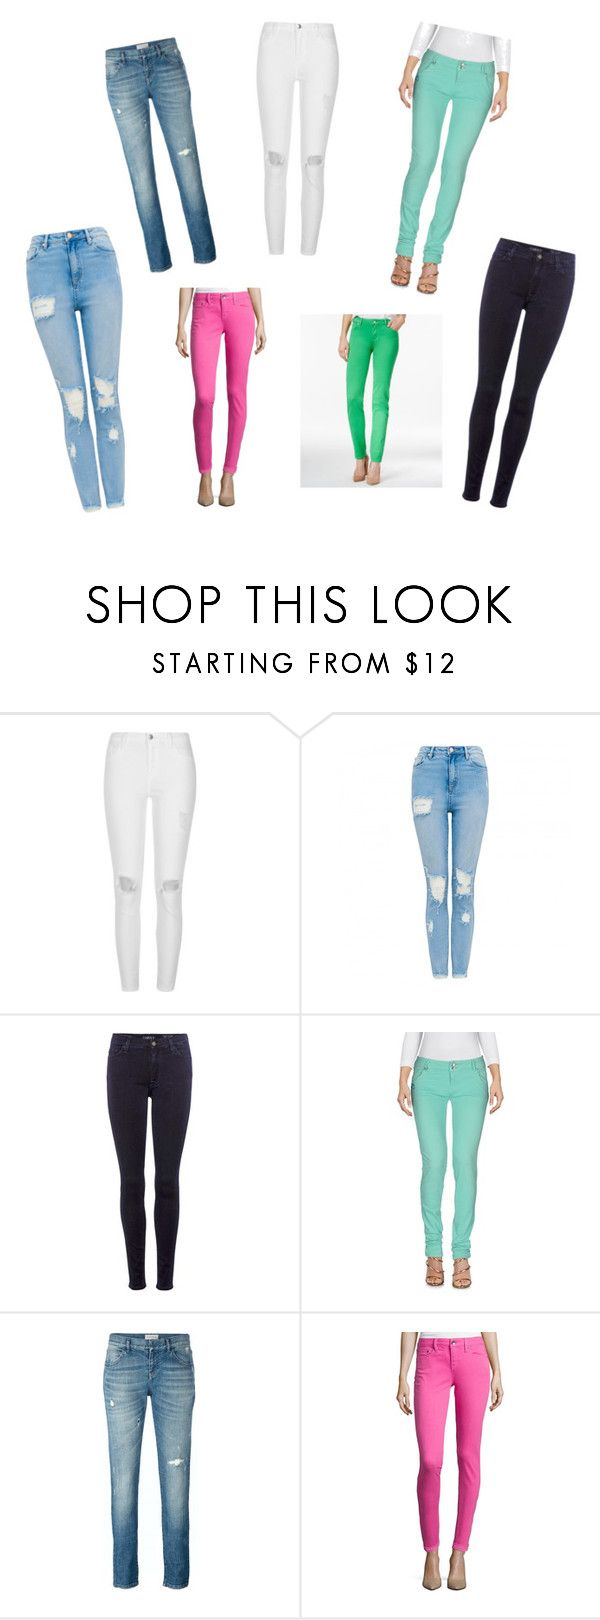 """my jeans collection!"" by ahotarpoojyaluxmi ❤ liked on Polyvore featuring River Island, 7 For All Mankind, JColor, Faith Connexion and Celebrity Pink"